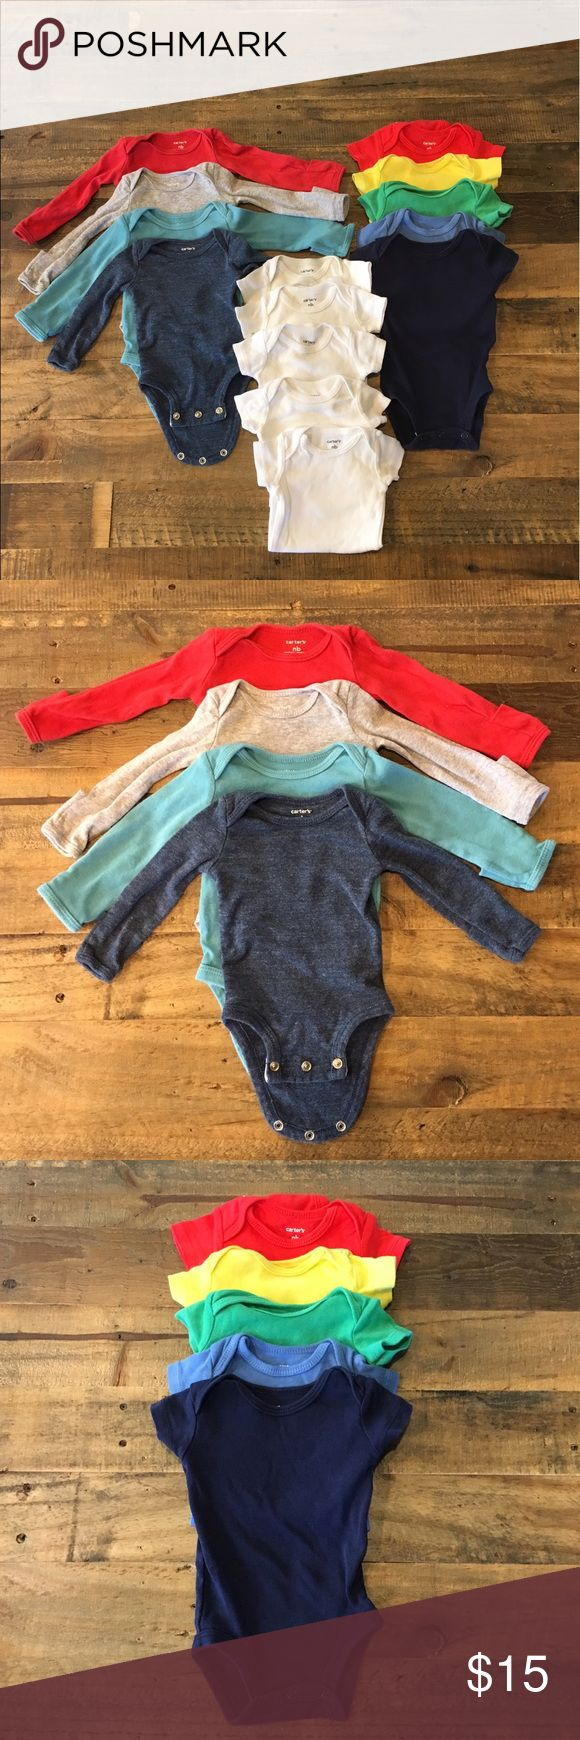 Lot of Newborn solid color onesies. Variety of solid color onesies. Four colored long sleeve, five colored short sleeve, and five white short sleeve. The long sleeve ones have an option roll over mitten feature to keep the baby from scratching their face. Great used condition. No stains or snags. Carter's Other